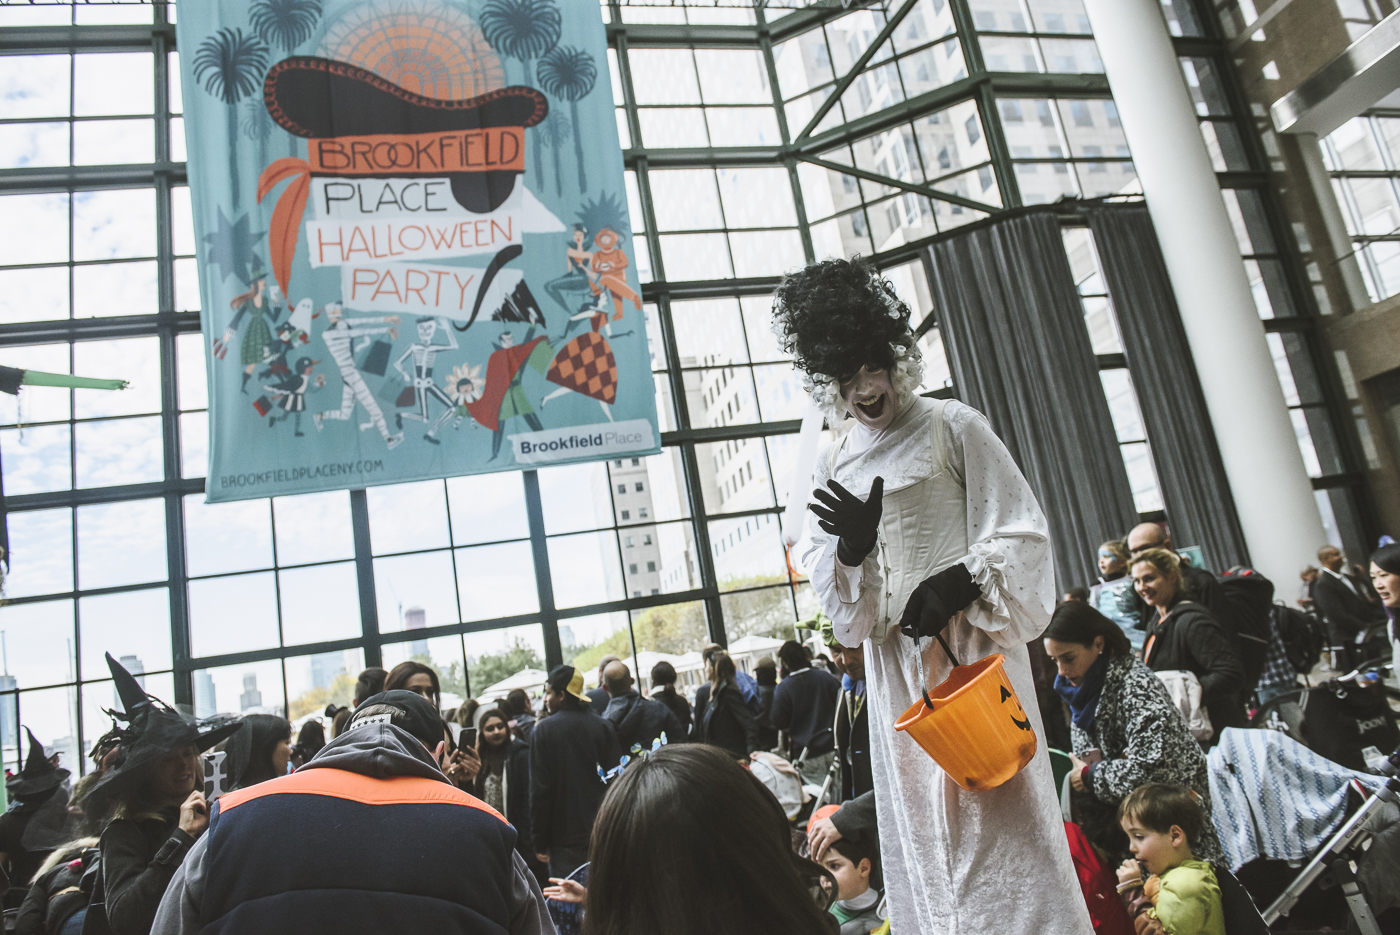 Brookfield Place Halloween Party 2015